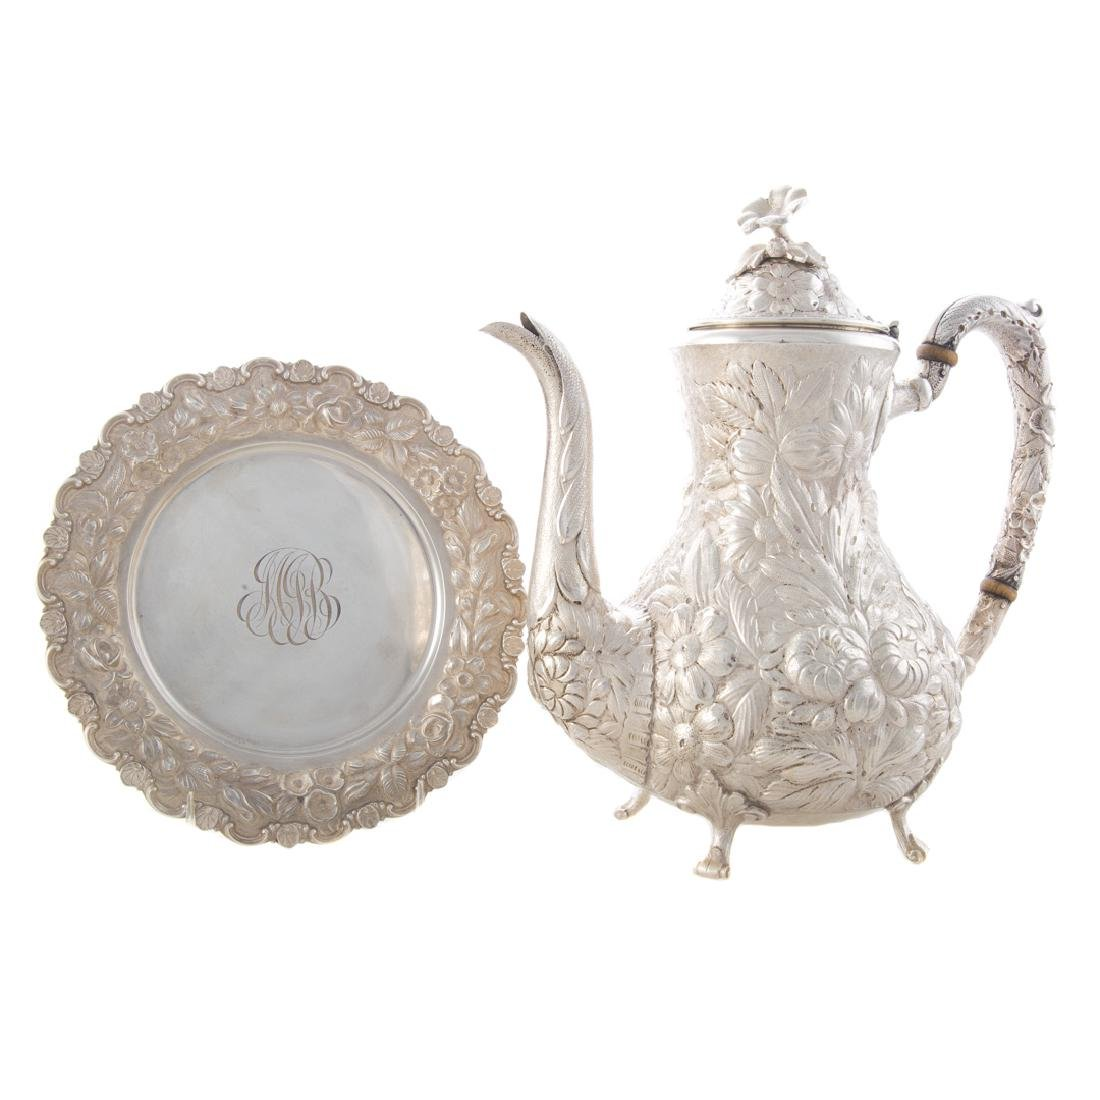 Stieff repousse sterling coffee pot & plate